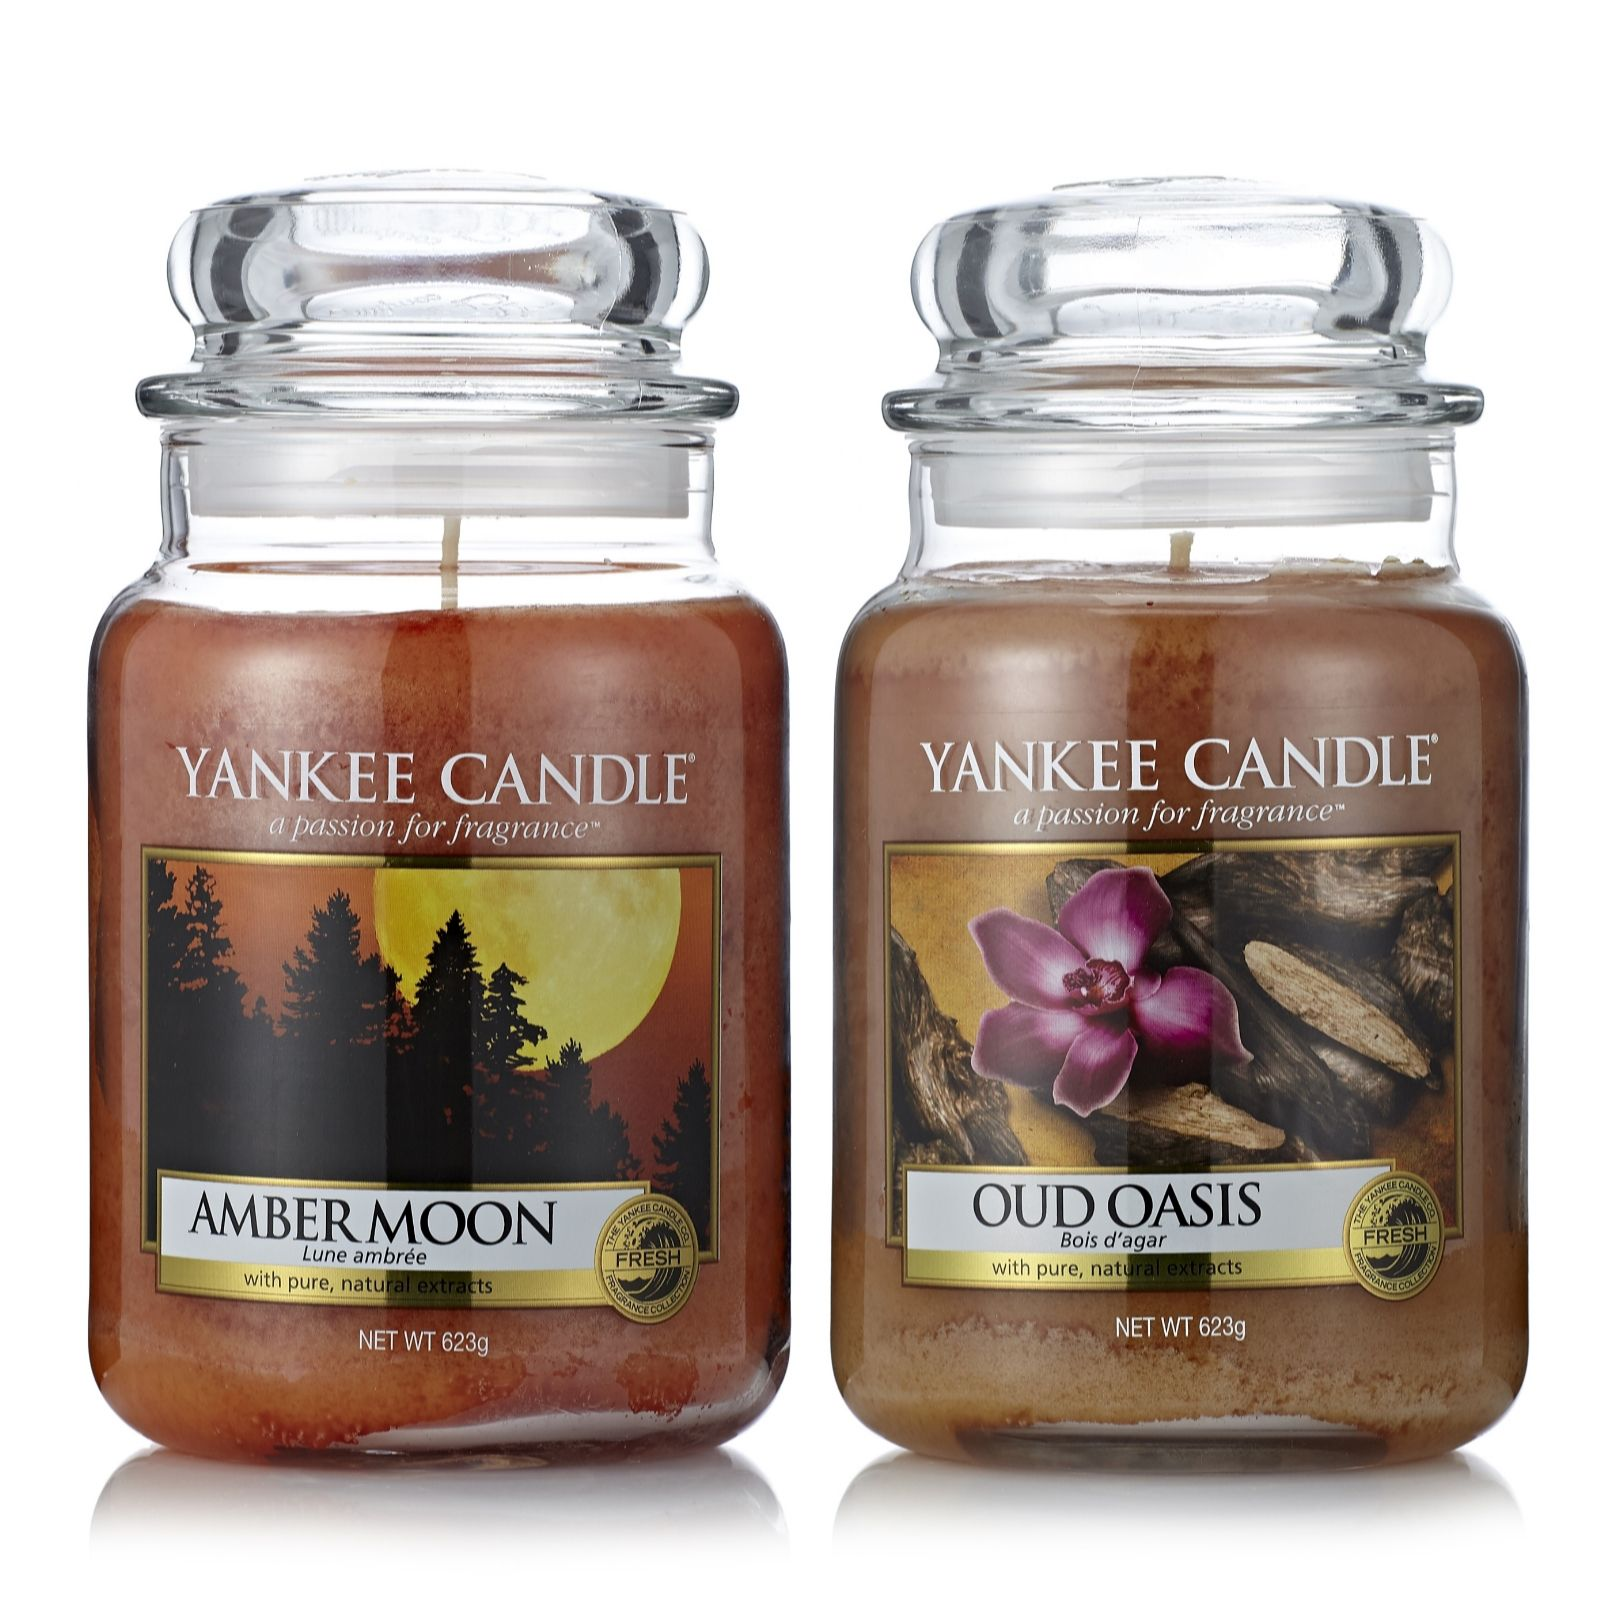 Yankee Candle Set of 2 Amber Moon & Oud Oasis Large Jars